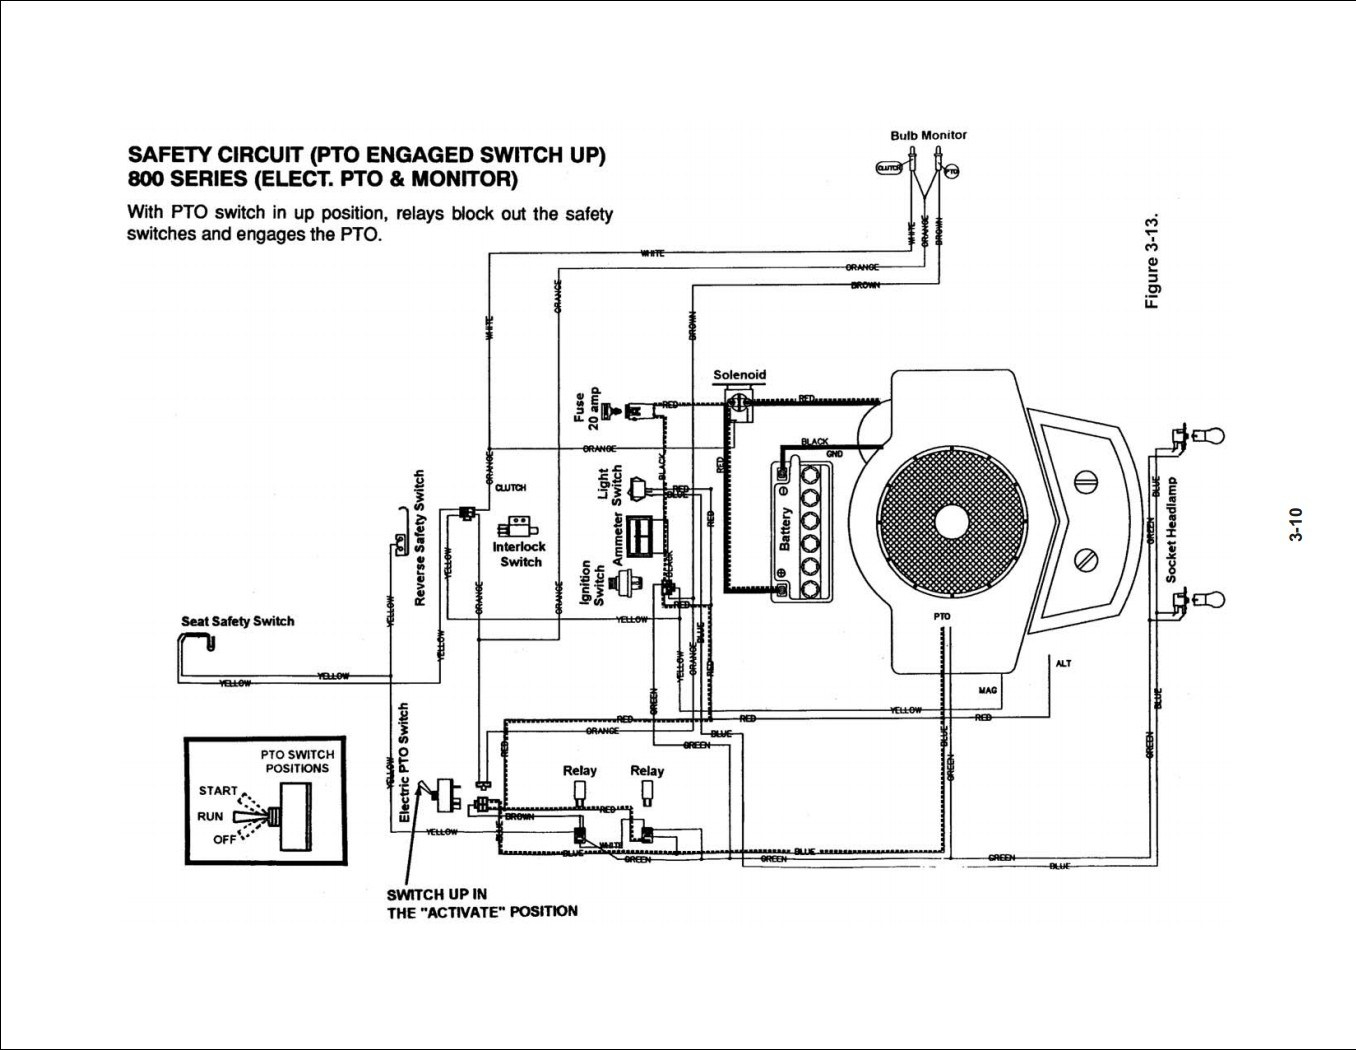 24 Hp Briggs And Stratton Wiring Diagram - Data Wiring Diagram Schematic - Briggs And Stratton Wiring Diagram